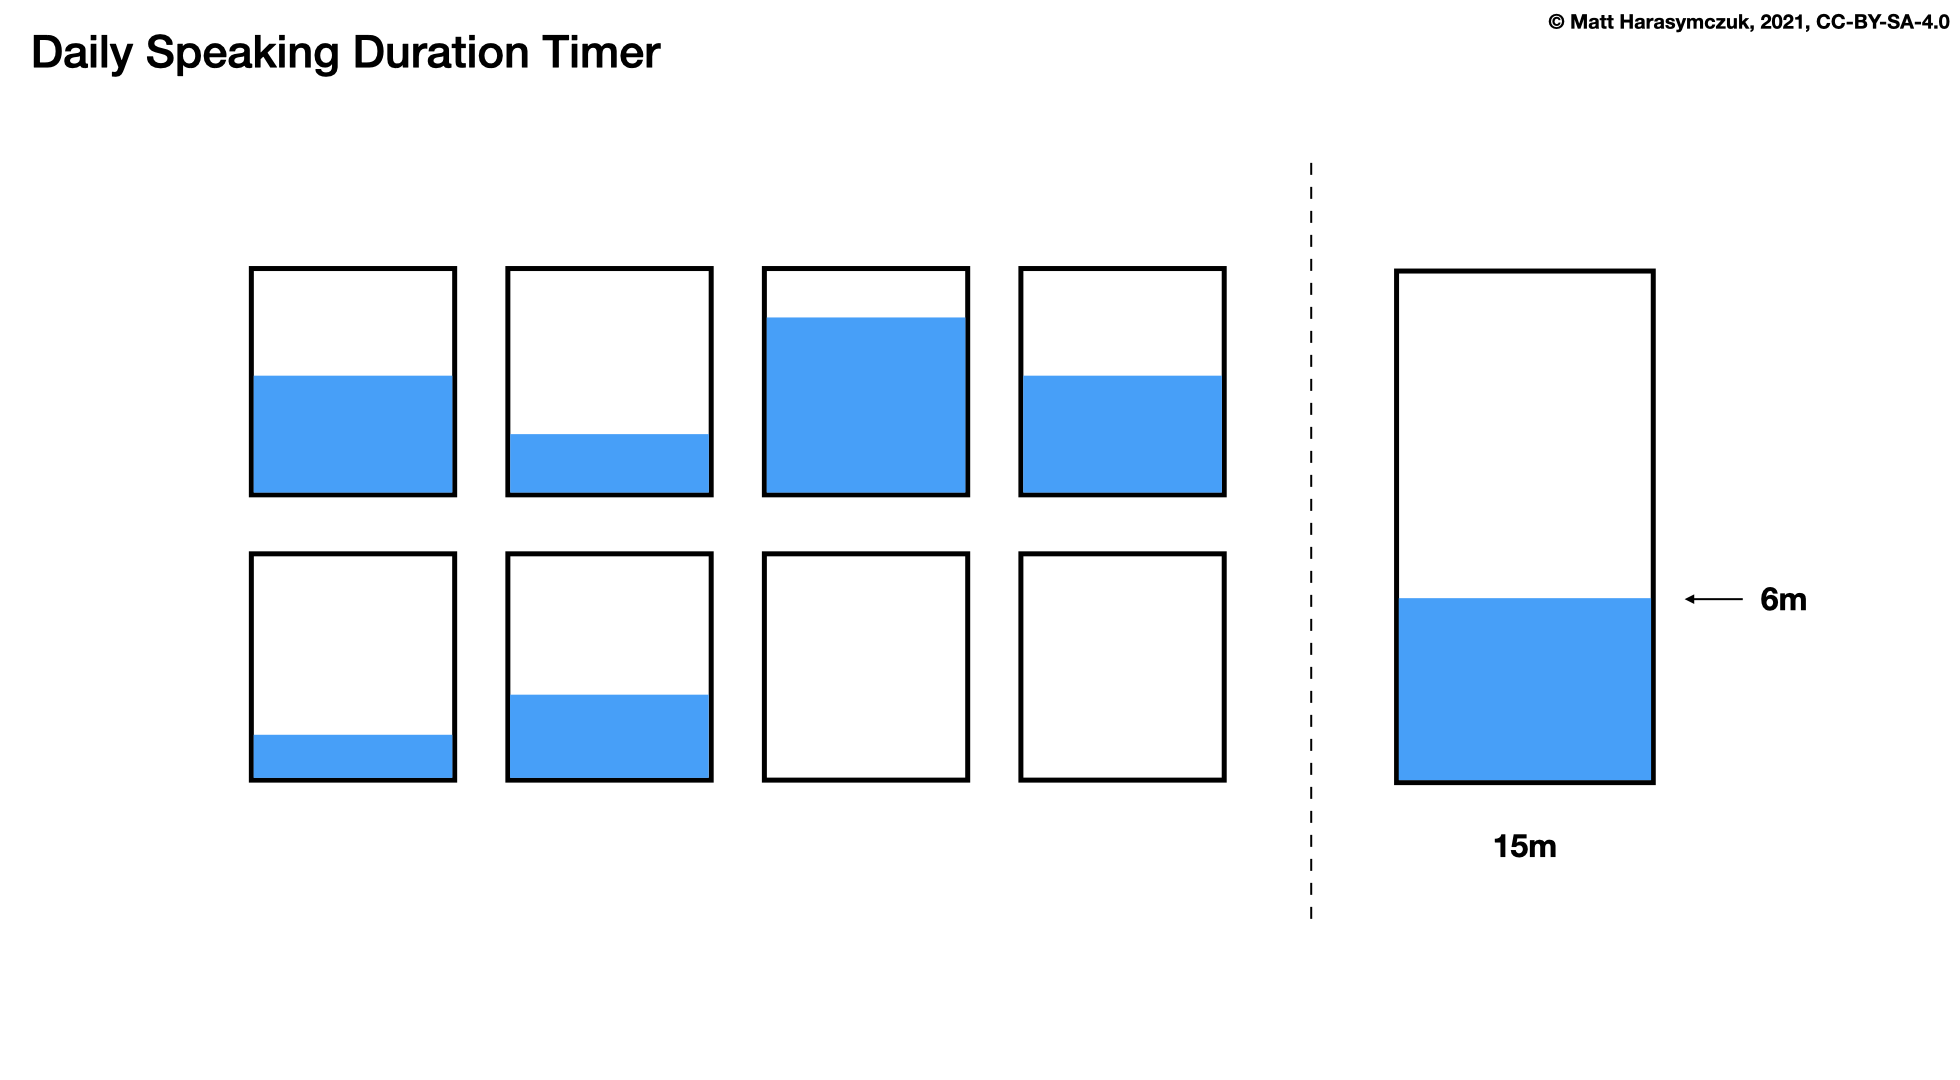 ../../_images/scrum-daily-timer.png